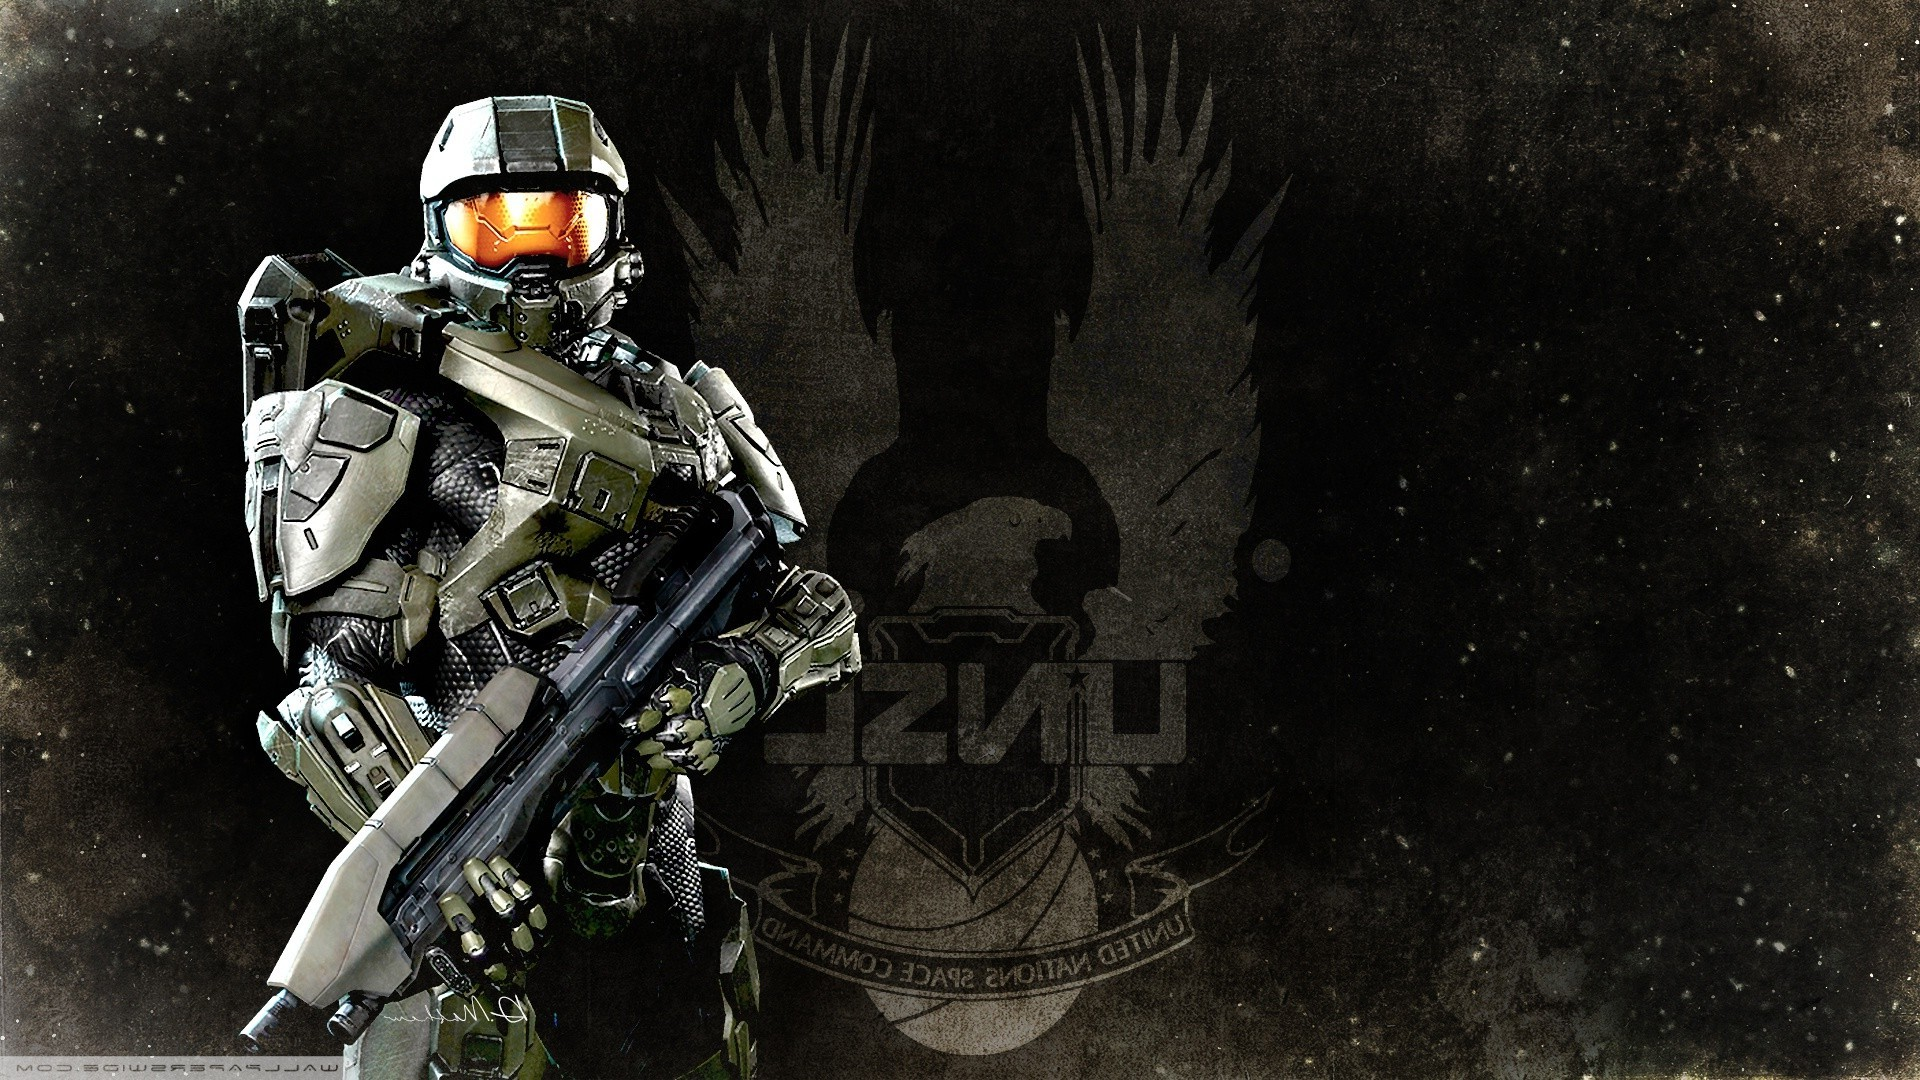 1920x1080 Halo, Master Chief, Halo 4, Xbox One, Halo: Master Chief Collection, Video  Games, Artwork, UNSC Wallpapers HD / Desktop and Mobile Backgrounds